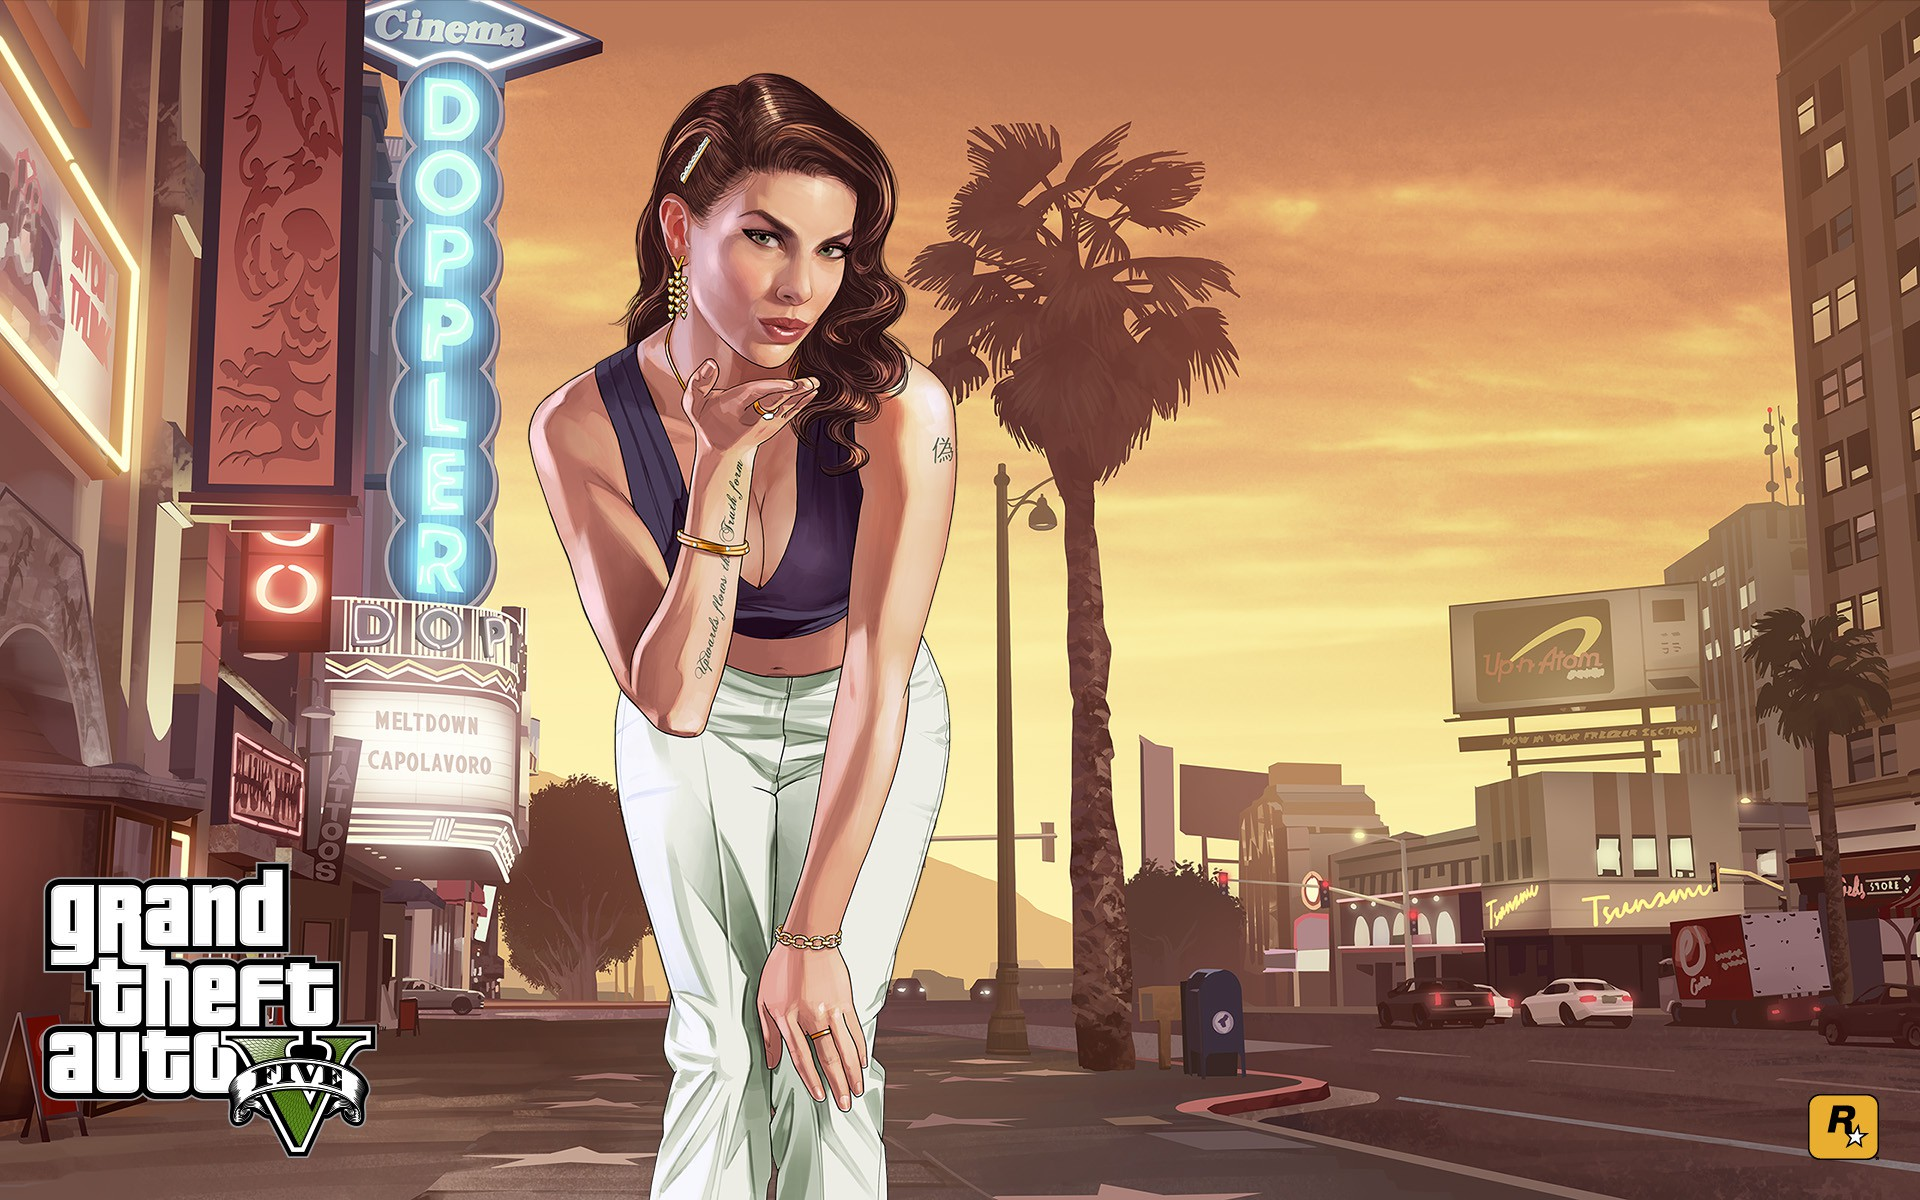 gta5-artwork-61-hd.jpg